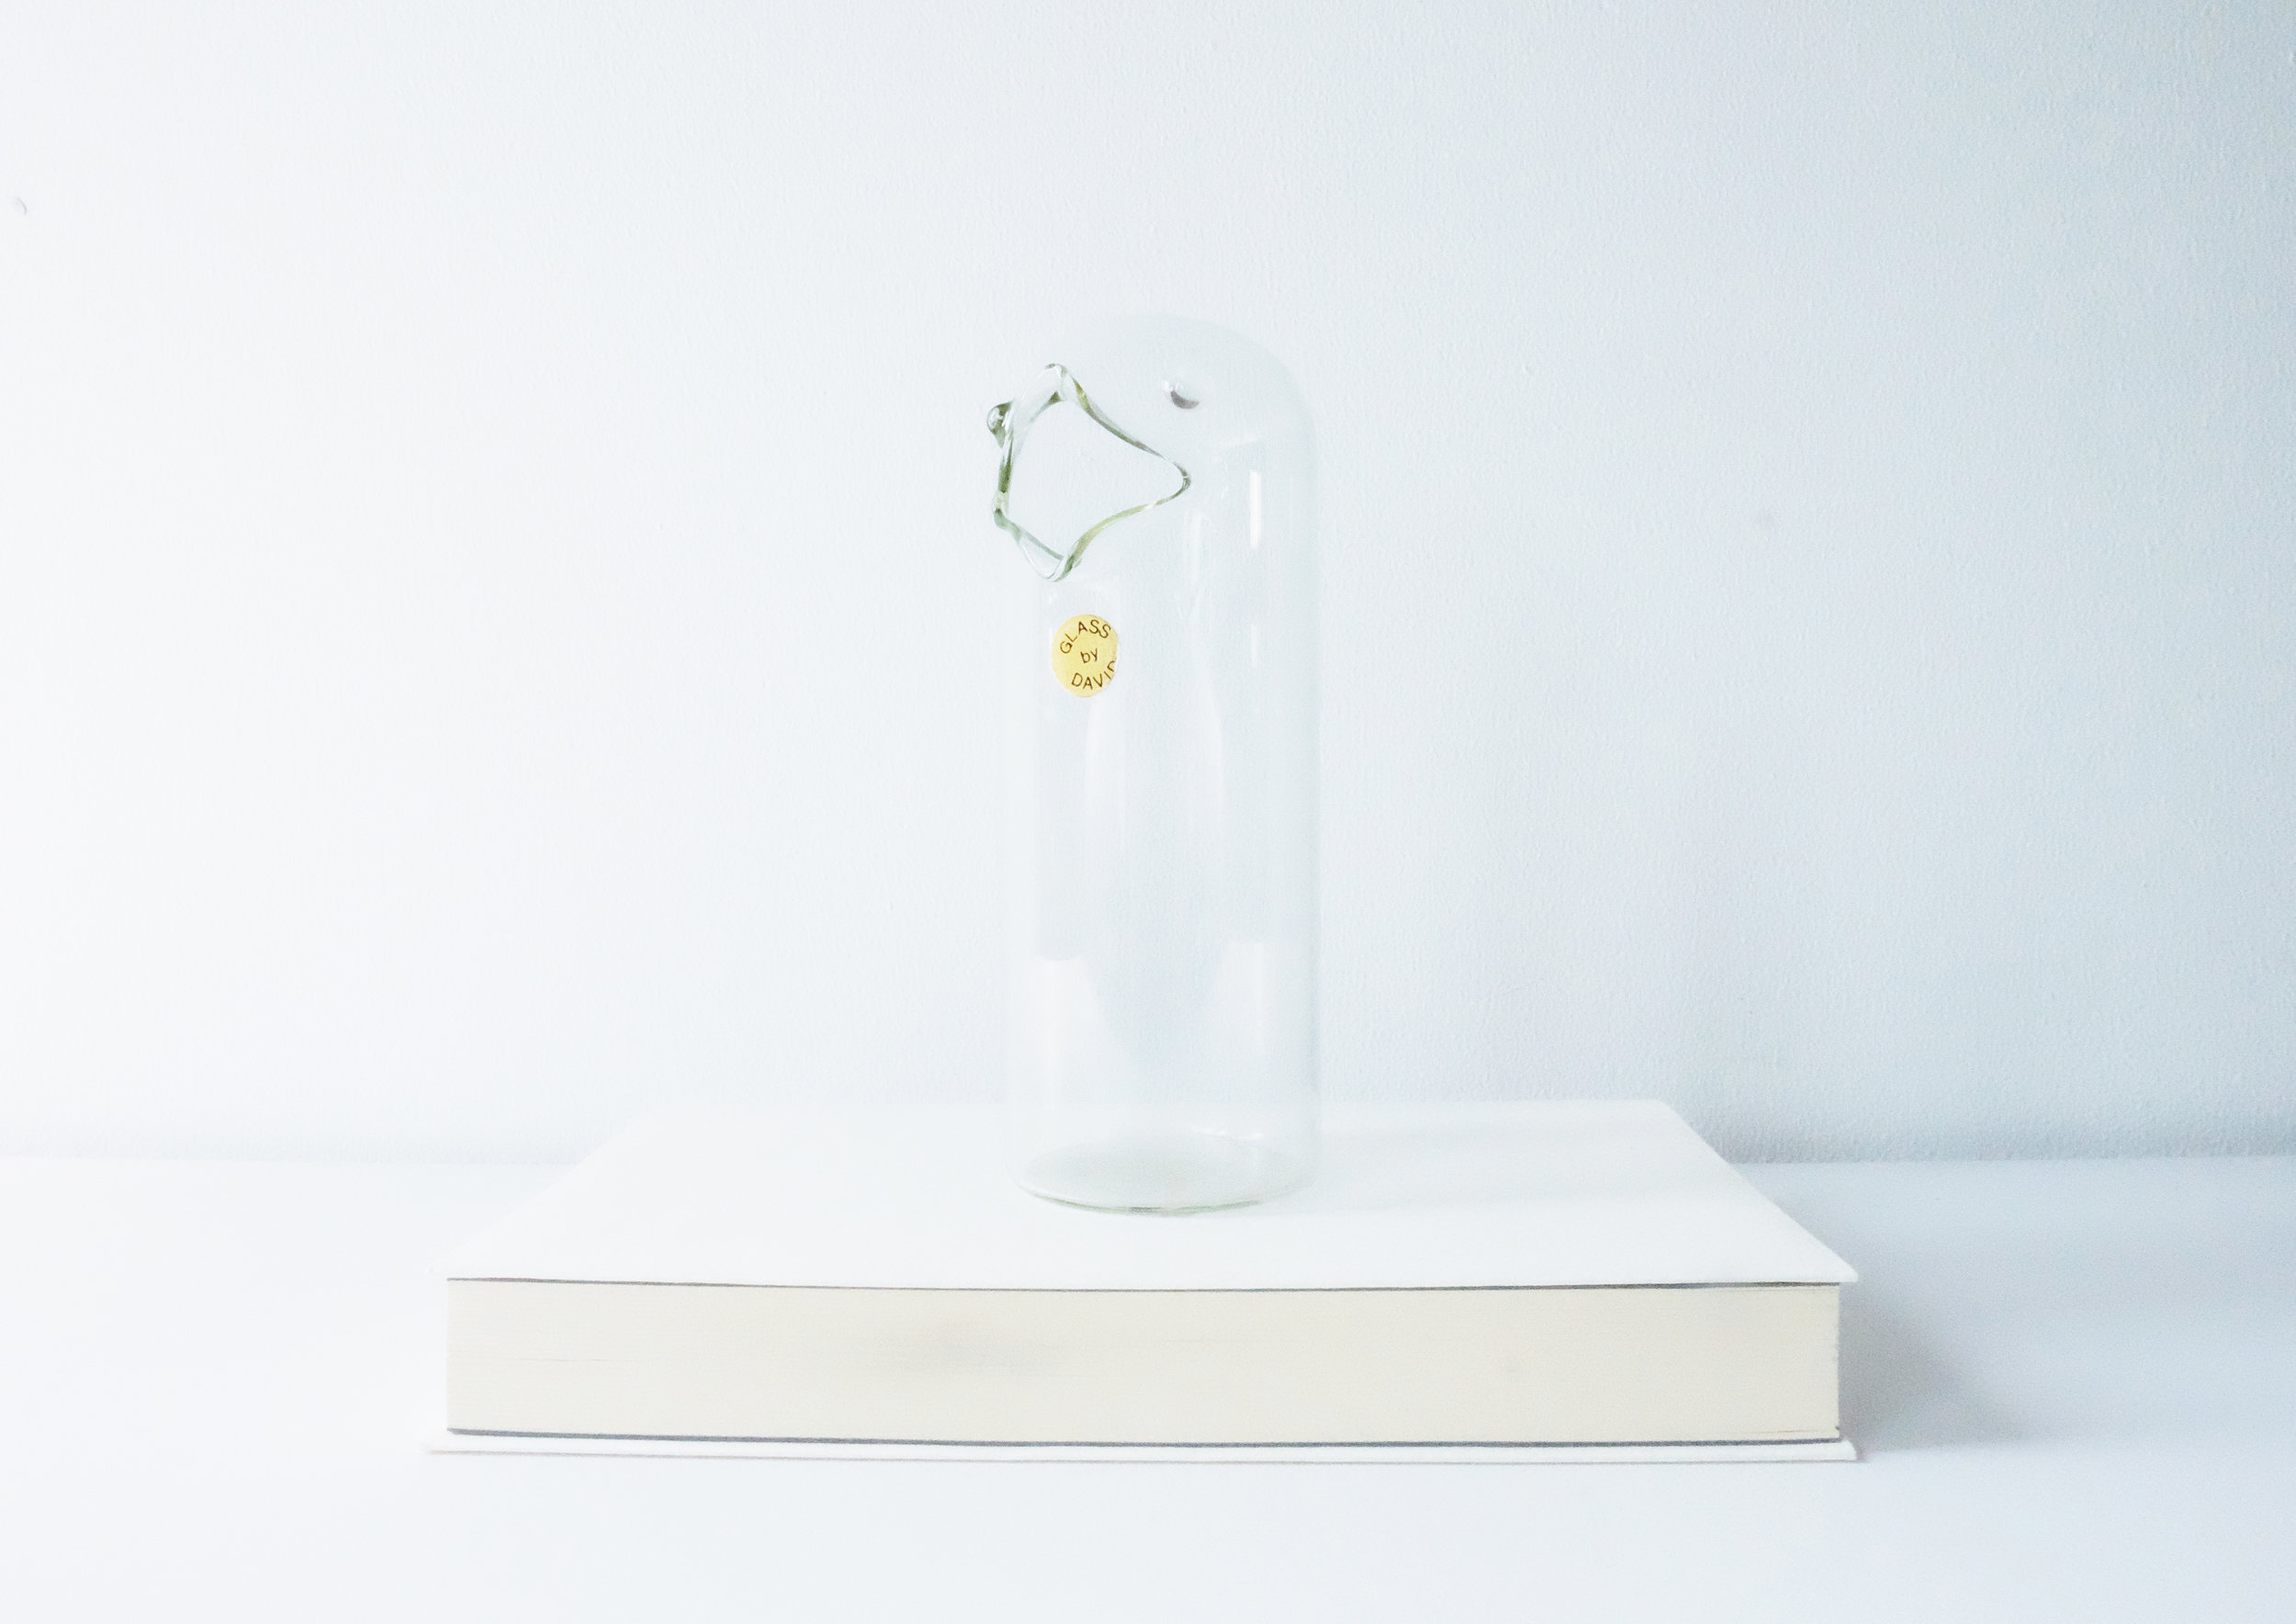 Peanuts Bottle | £15 | found at Sunbury, UK  This is a Danish glass bottle for placing peanuts. Peanuts come out from his beak.